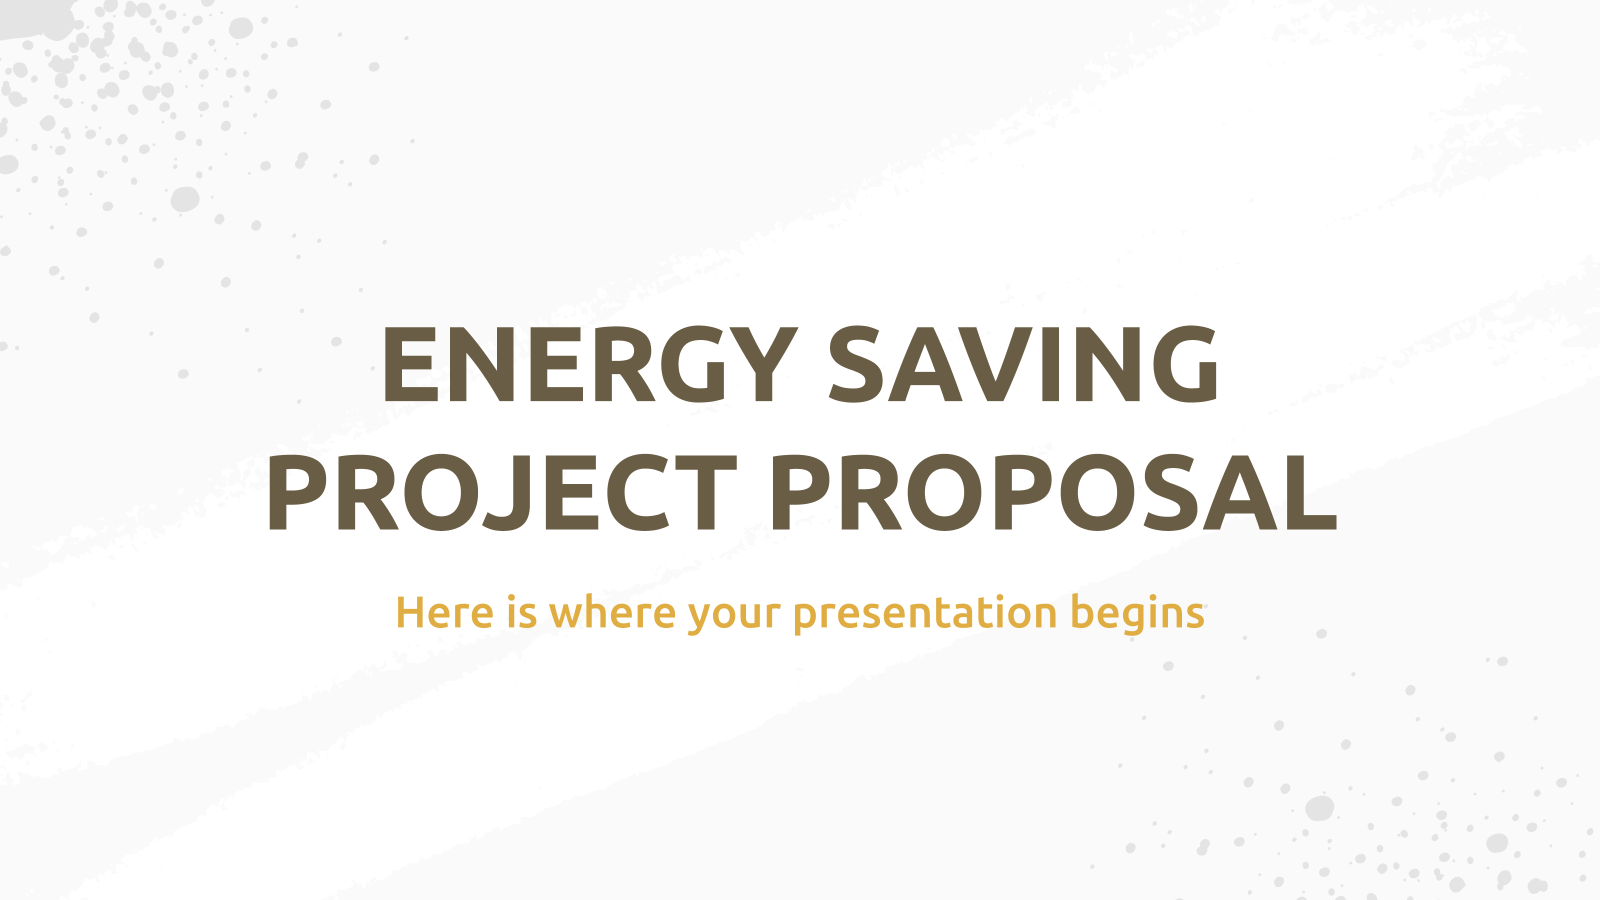 Energy Saving Project Proposal presentation template